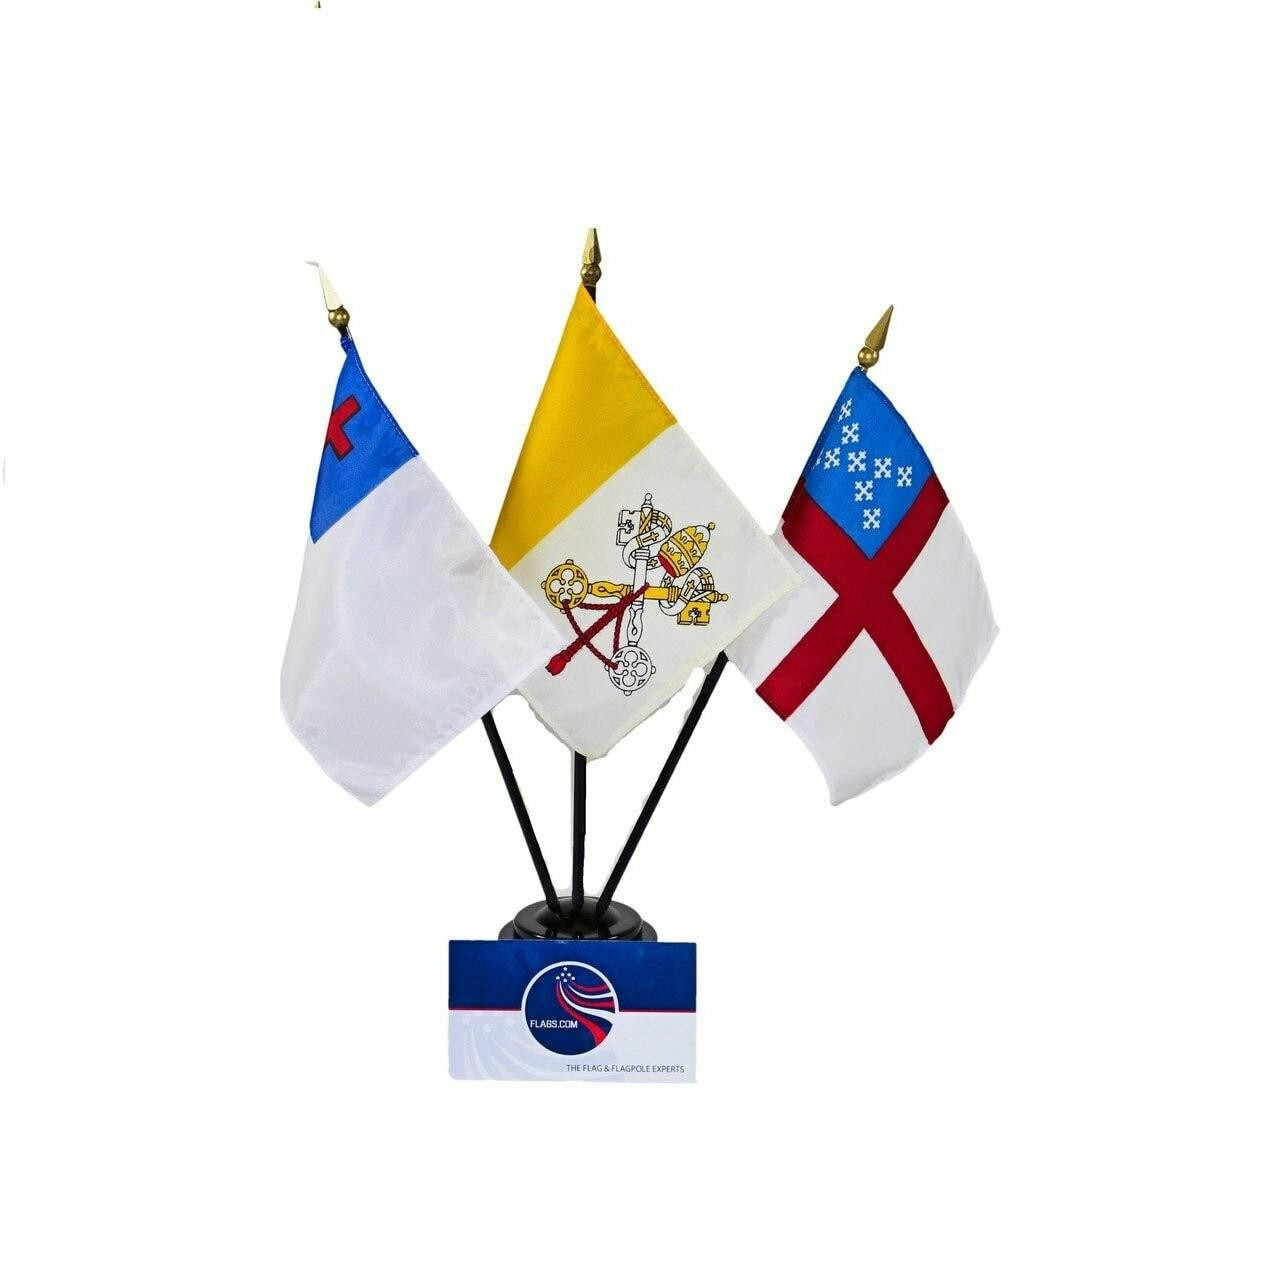 Three religious flags in one black plastic base. The Christian flag features a white background with a blue field in its top left corner. Inside the blue field is a red Latin cross. The Episcopal flag consists of a white background with a red cross going across its center. In the top left corner is a blue field with nine small white Greek-style crosses with embellished ends, arranged in an X-shaped cross pattern. The Vatican flag features a white and yellow vertical bi-color pattern - yellow is on the left side, white on the right. Centered on the white side of the flag is an ornate yellow, silver and red design featuring a papal tiara, keys, priestly vestments, and religious cords. This is the coat of arms of the Vatican City.